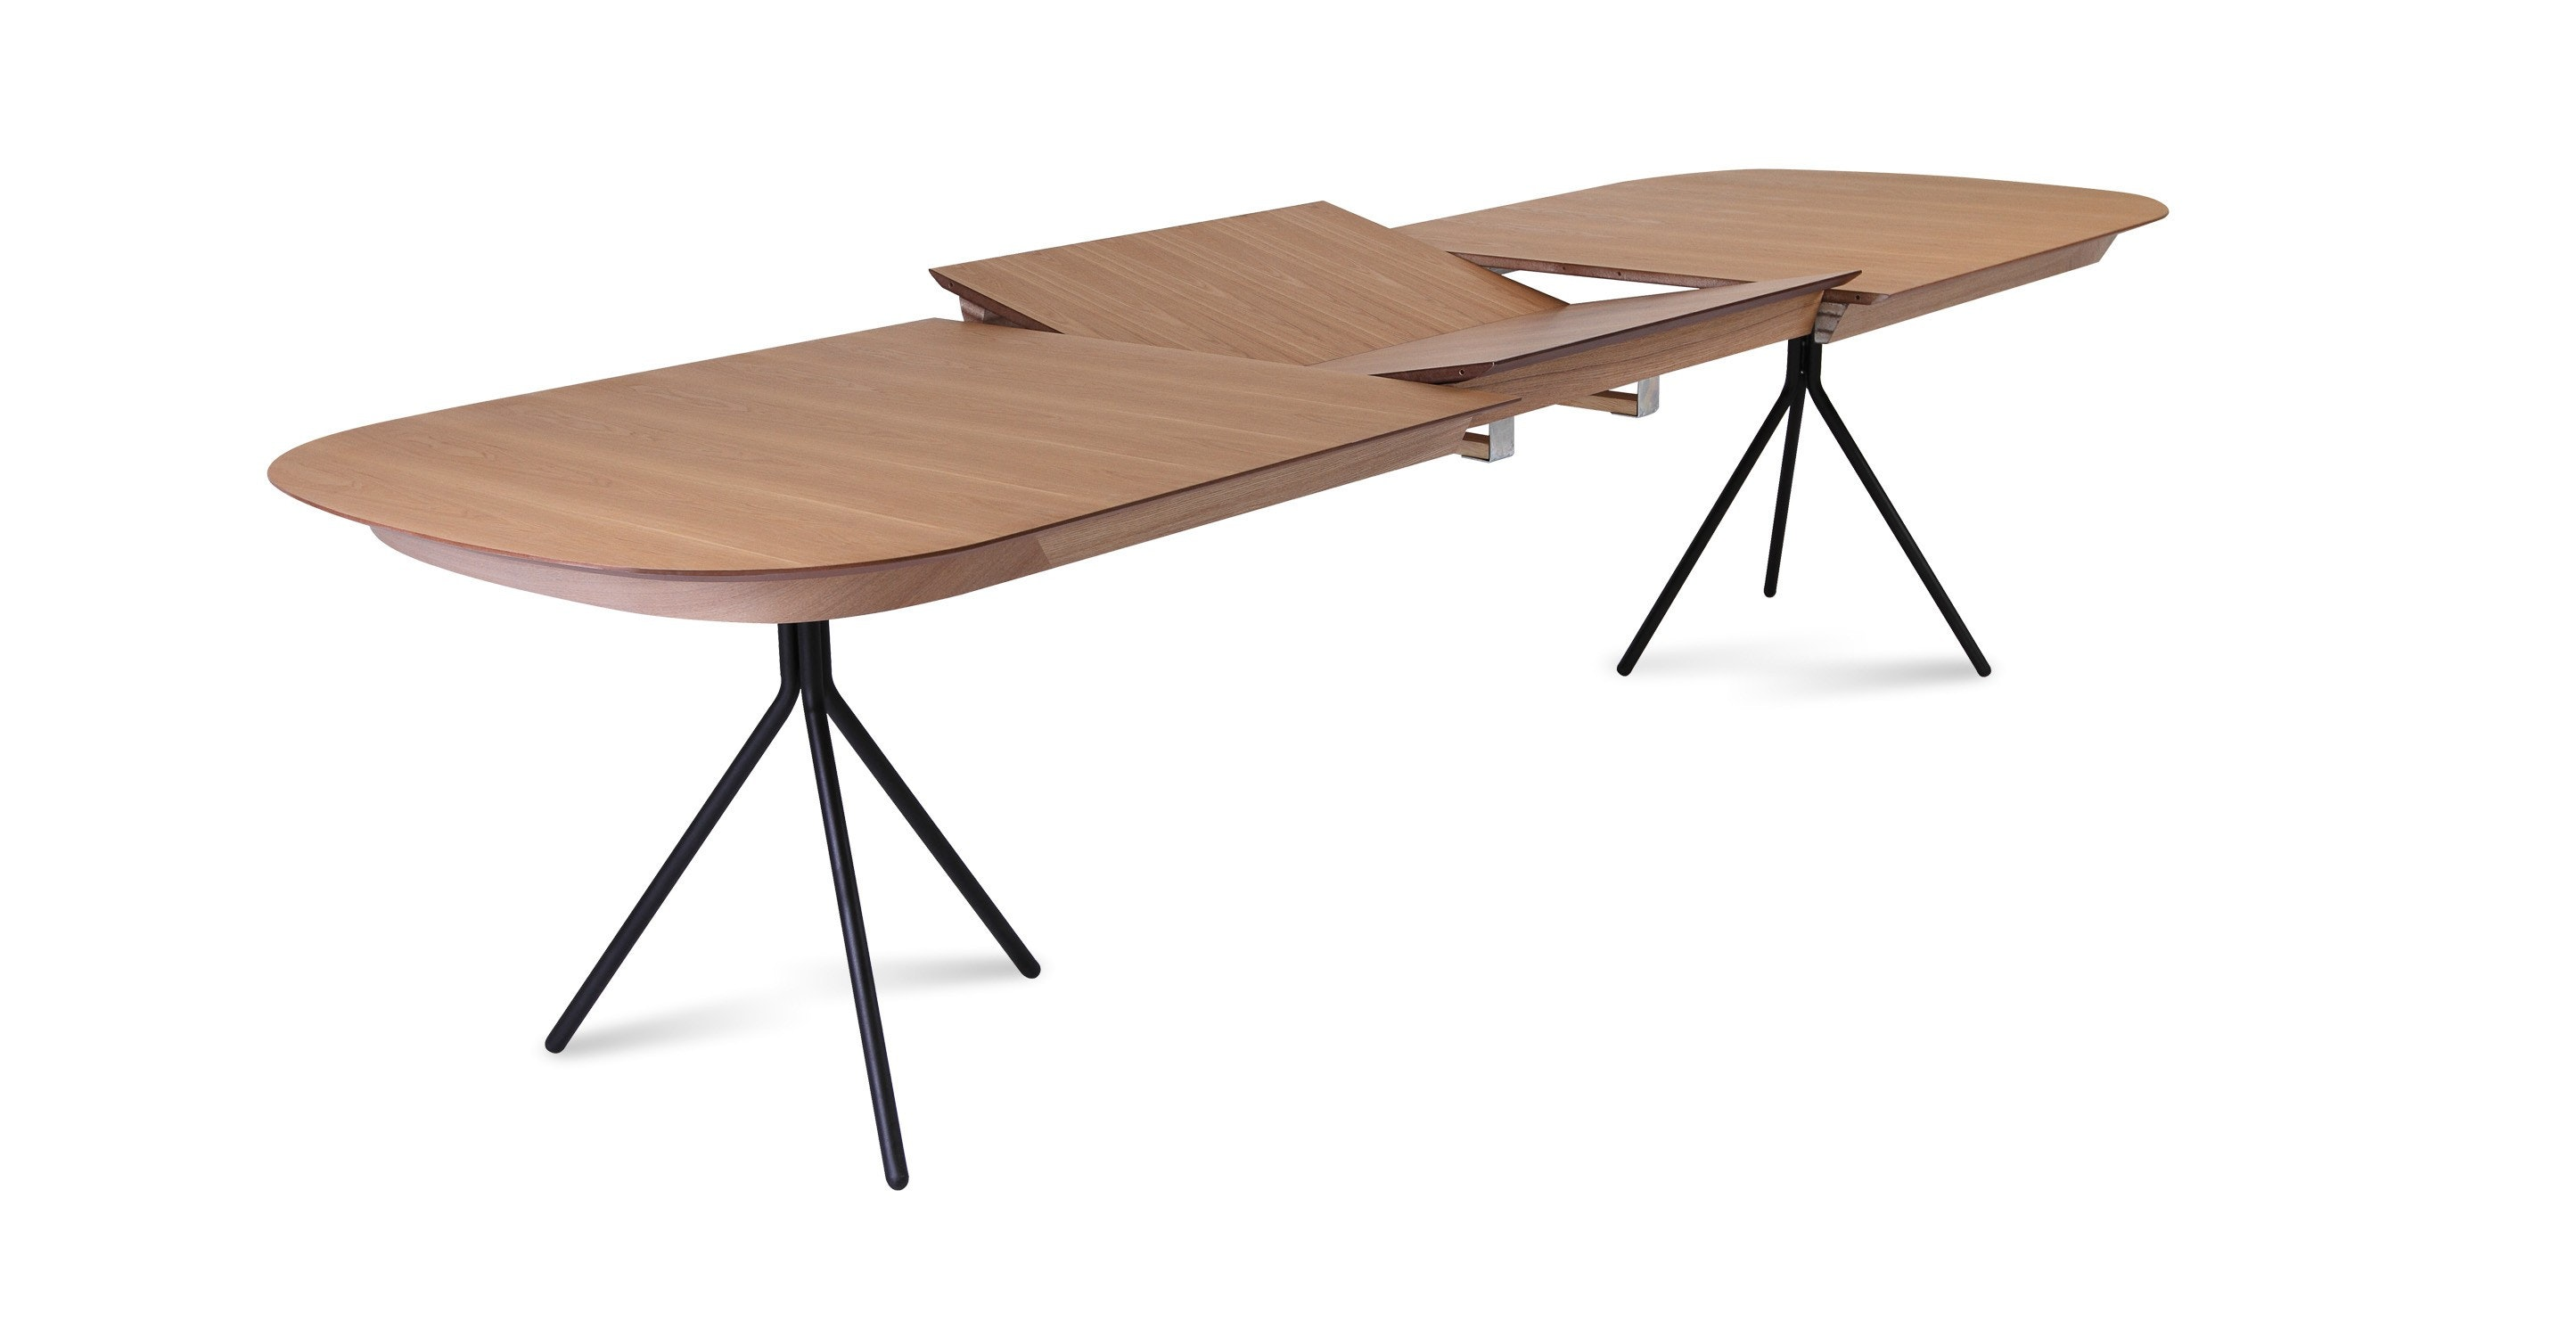 Otto Expandable Dining Table Tables Article Modern  : image9675 from www.article.com size 2890 x 1500 jpeg 197kB